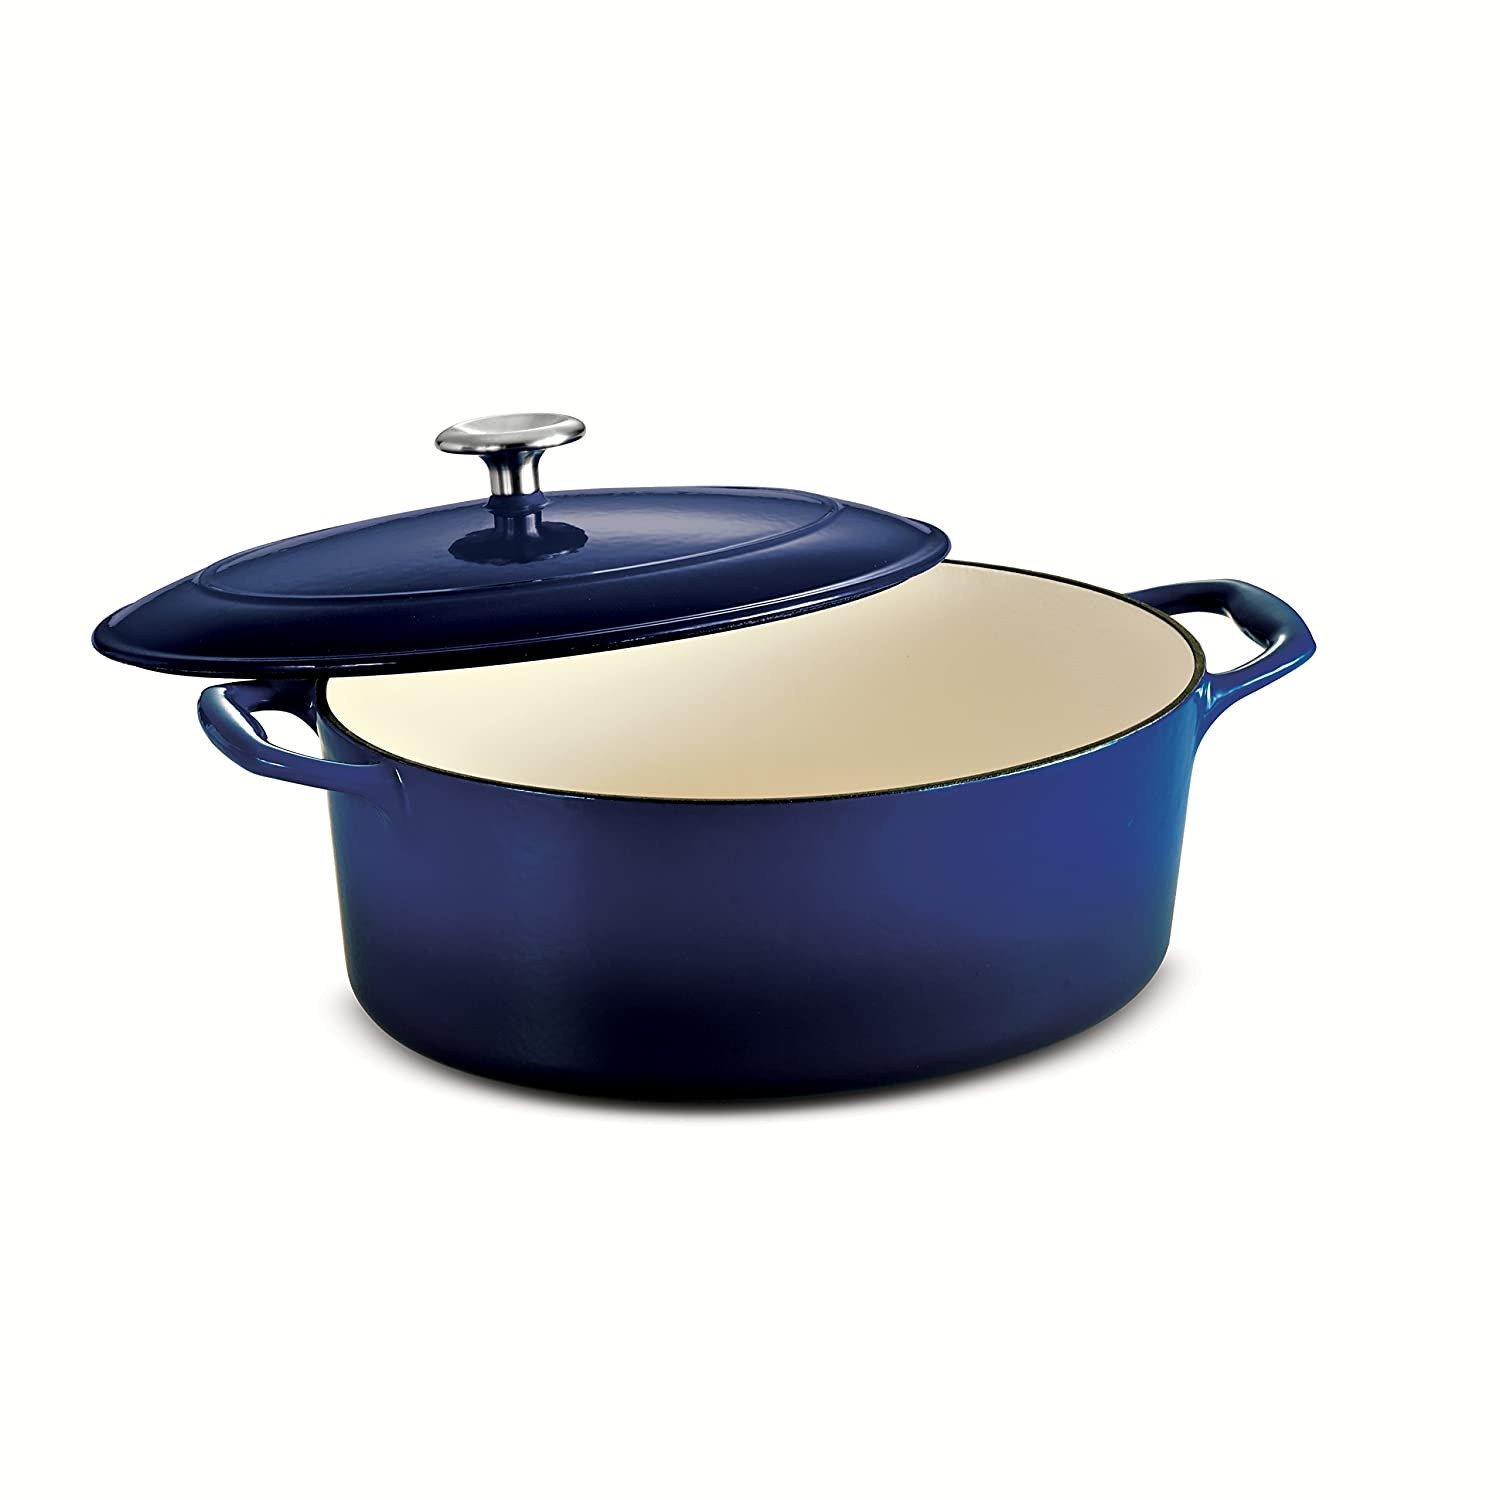 Tramontina 80131/077DS Gourmet Enameled Cast Iron Covered Oval Dutch Oven, 5.5-Quart, Gradated Cobalt